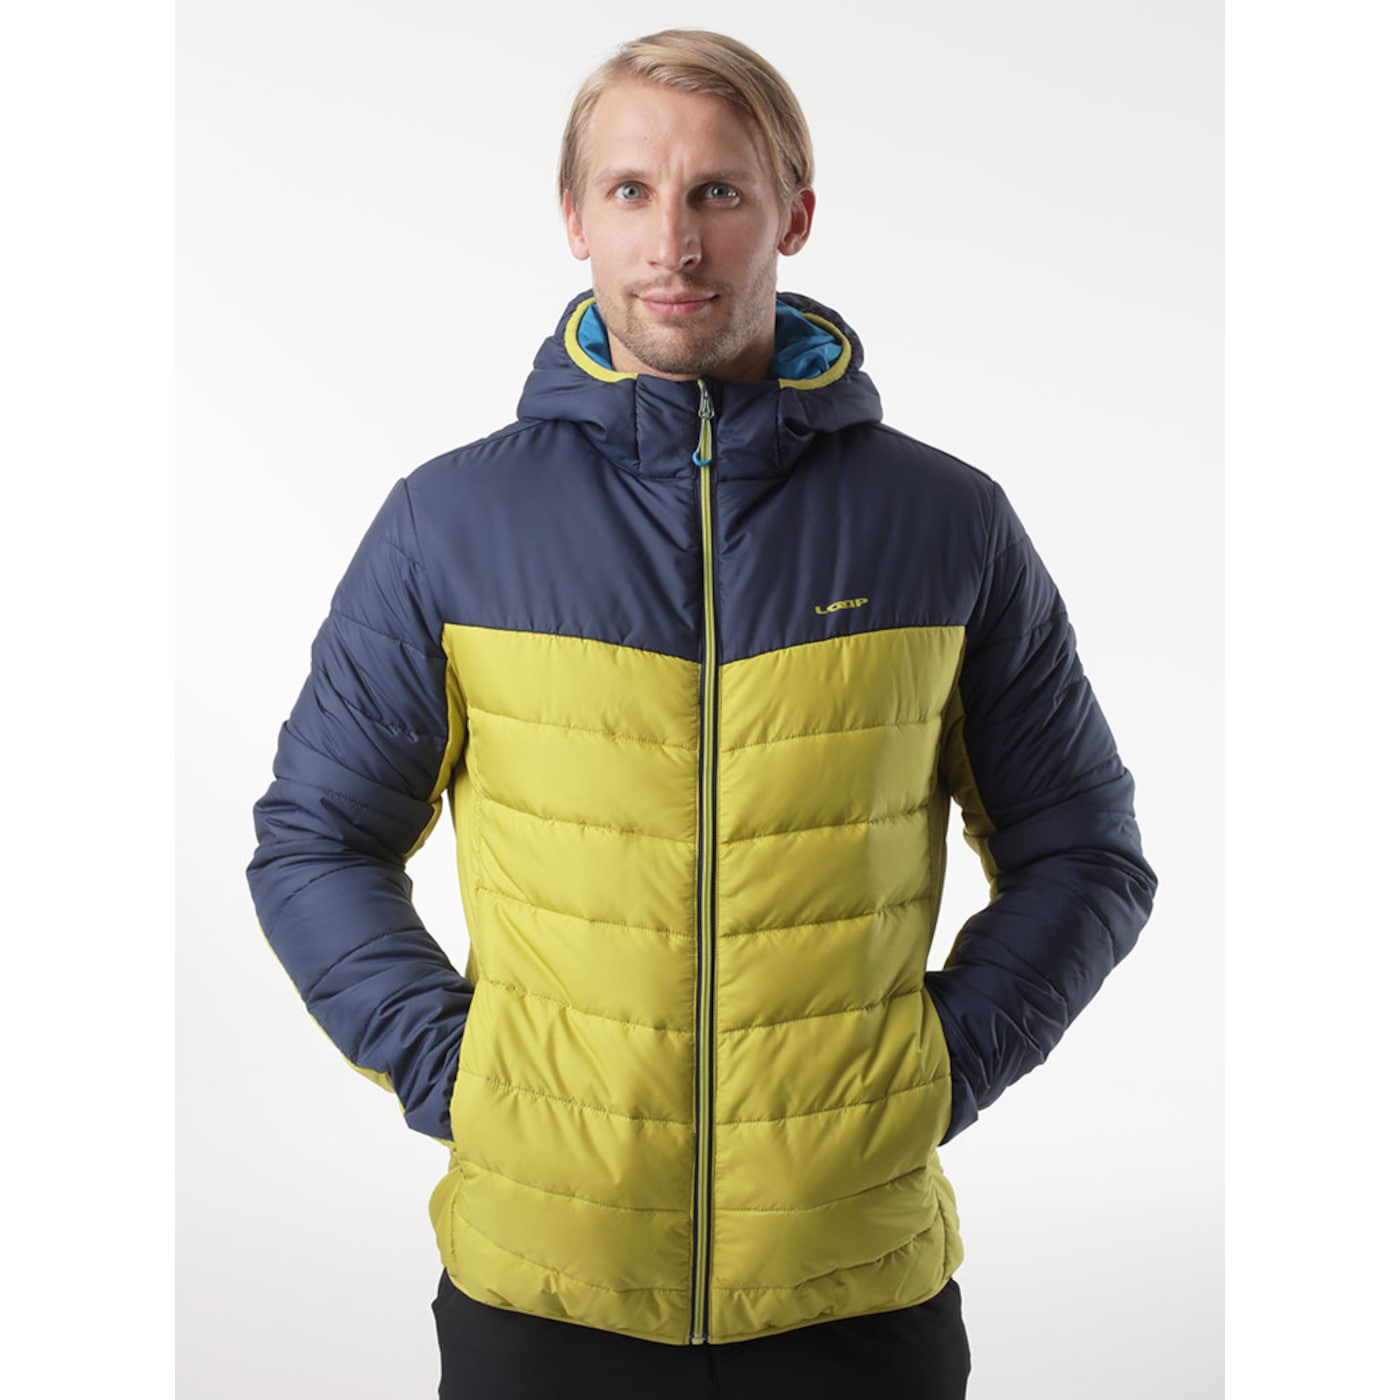 IRIS men's winter jacket for the city green